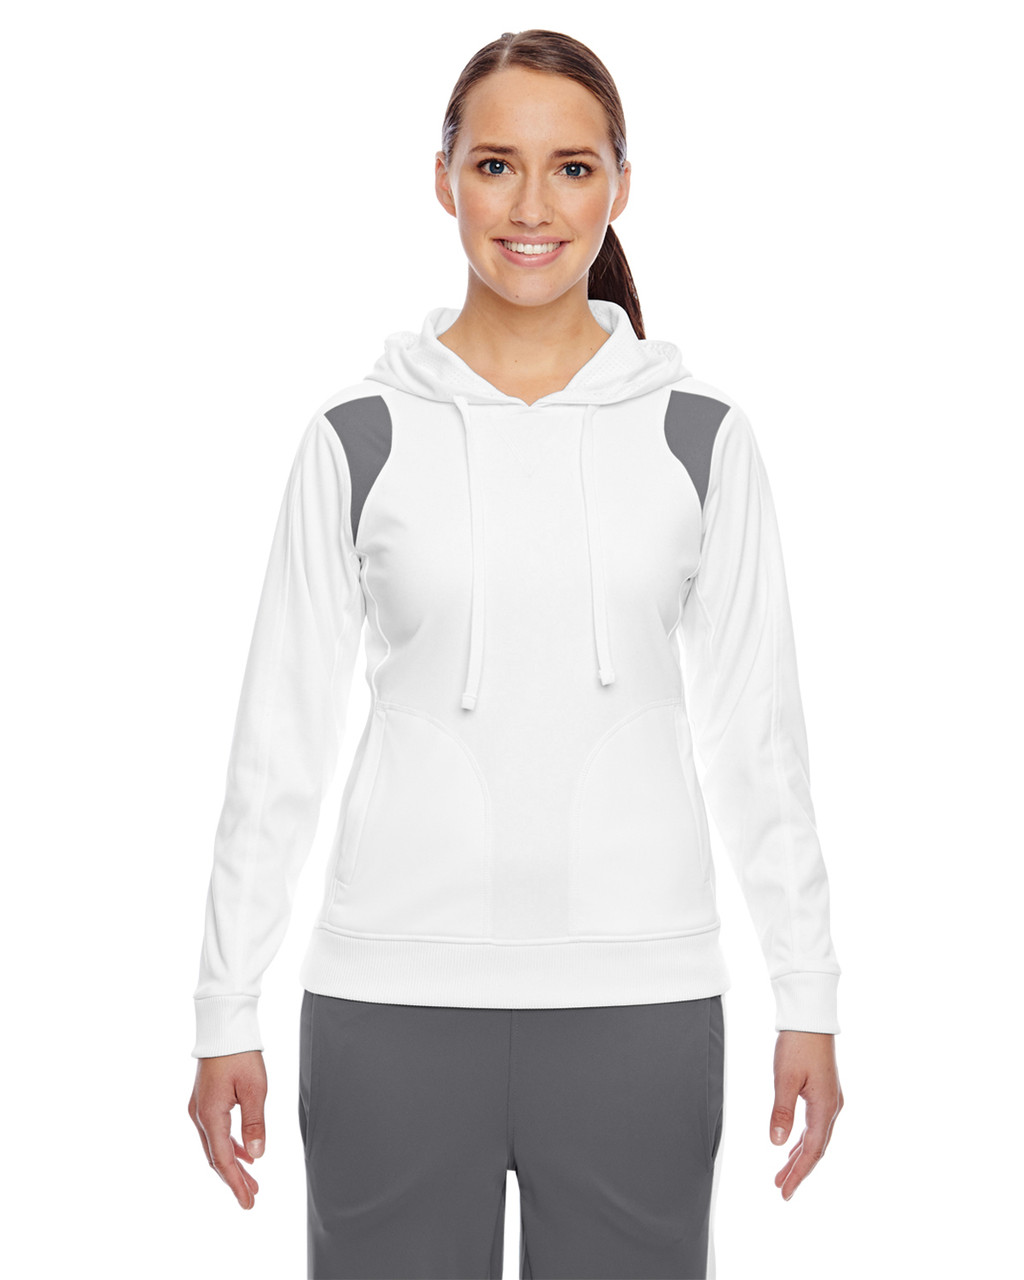 White/Graphite - TT30W Team 365 Ladies' Elite Performance Hoodie | Blankclothing.ca